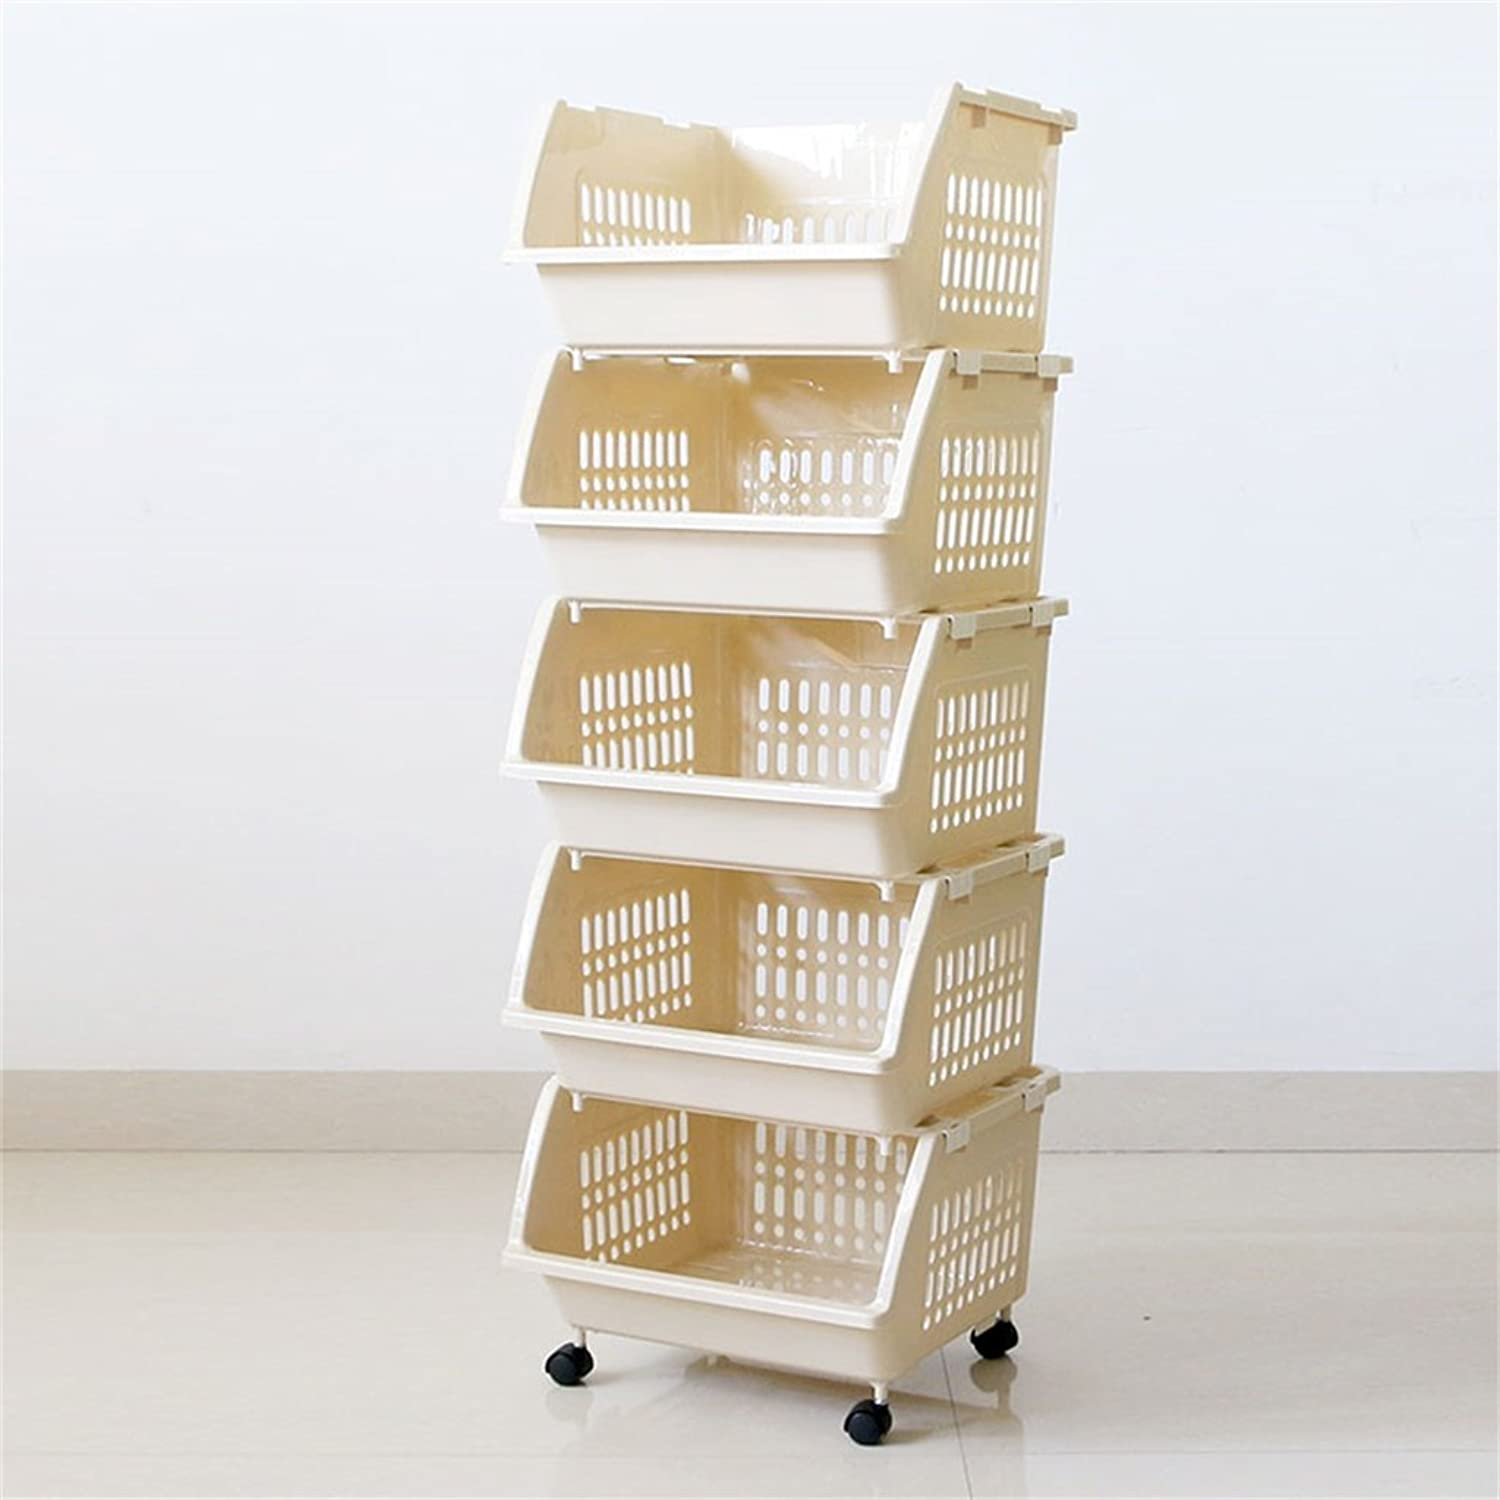 Cqq Shelf Bathroom Storage Box Bath Room Shelf Floor Type Kitchen Put Vegetables Racks Multi-Storey Household Fruit Storage Baskets Removable Storage Rack (Size   39  114cm)